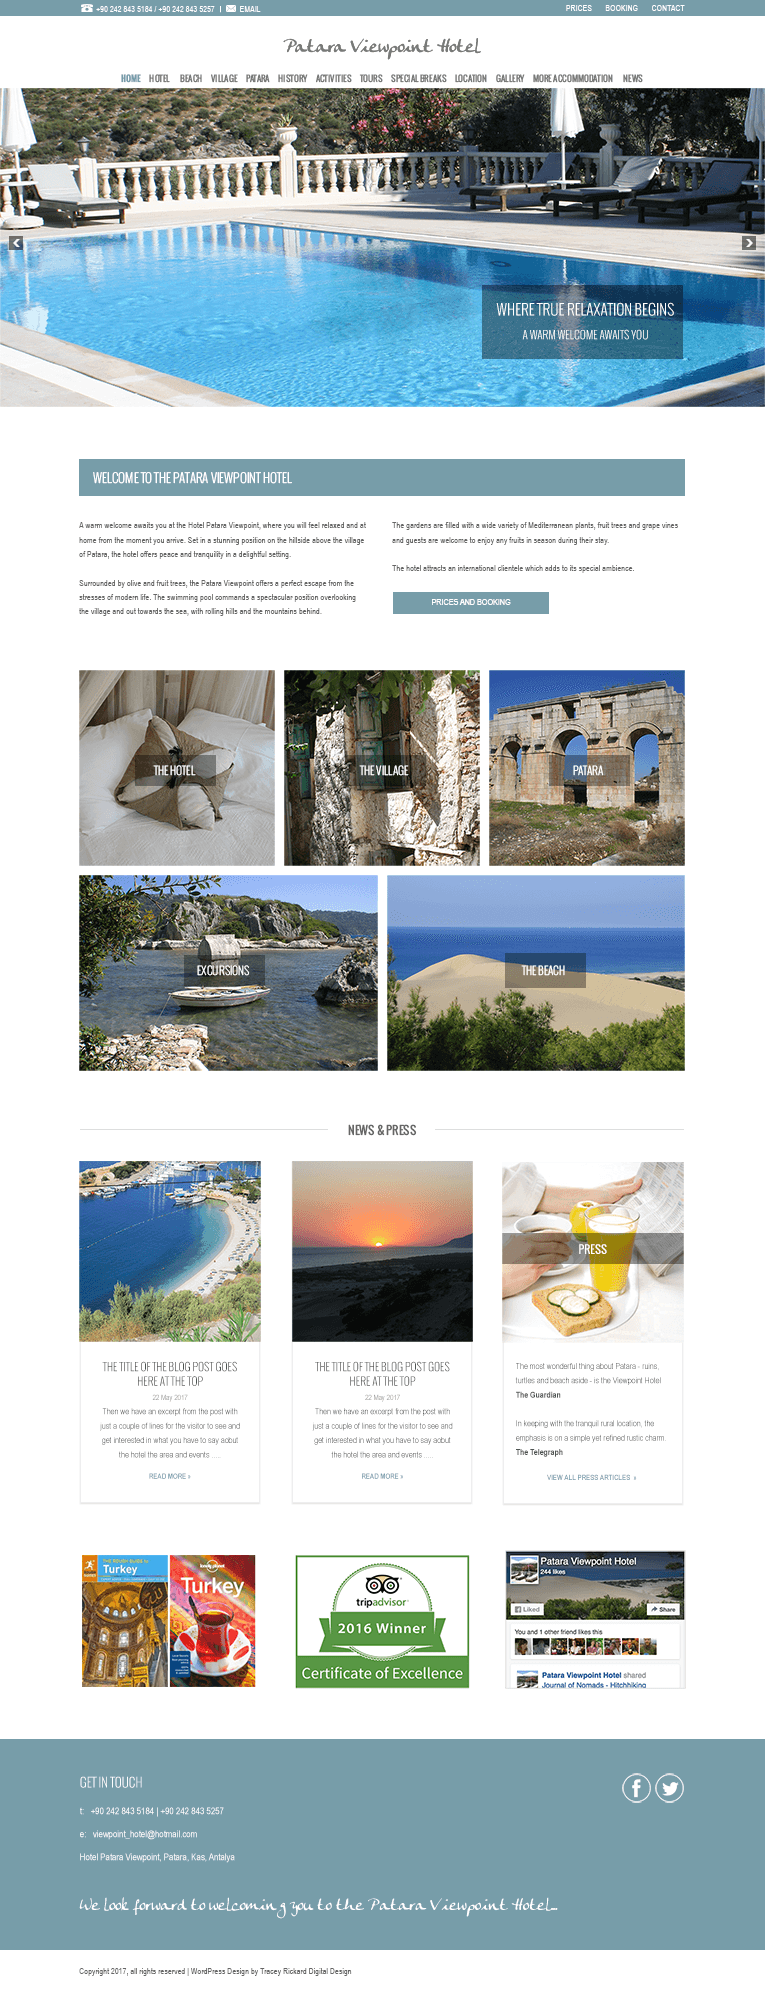 Freelance web design for Patara Viewpoint Hotel